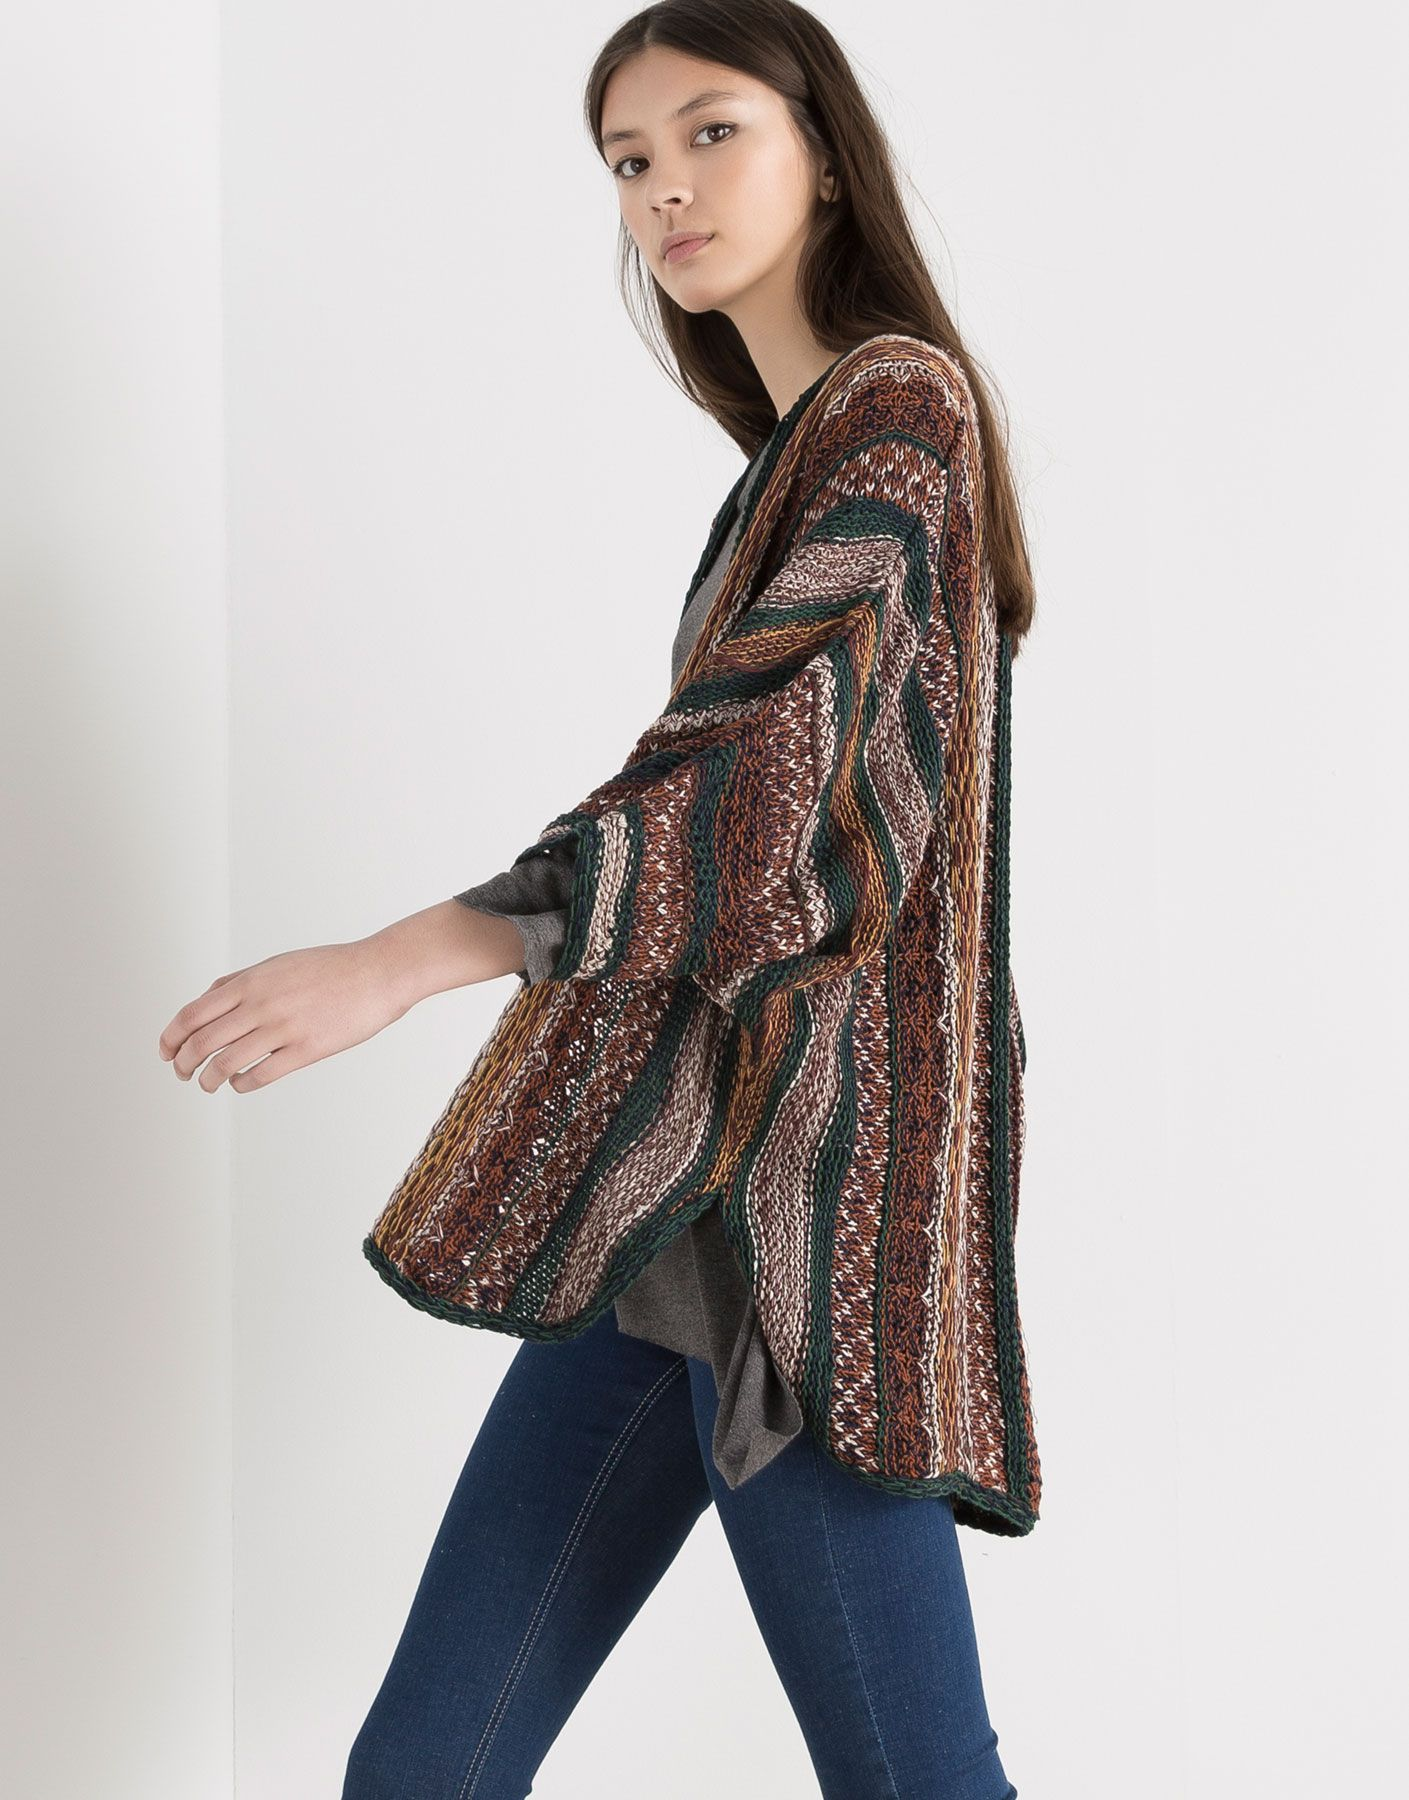 Cardigans amp;bear Pull Sweaters Kimono amp; Indonesia Striped Woman qx45Yfpxw